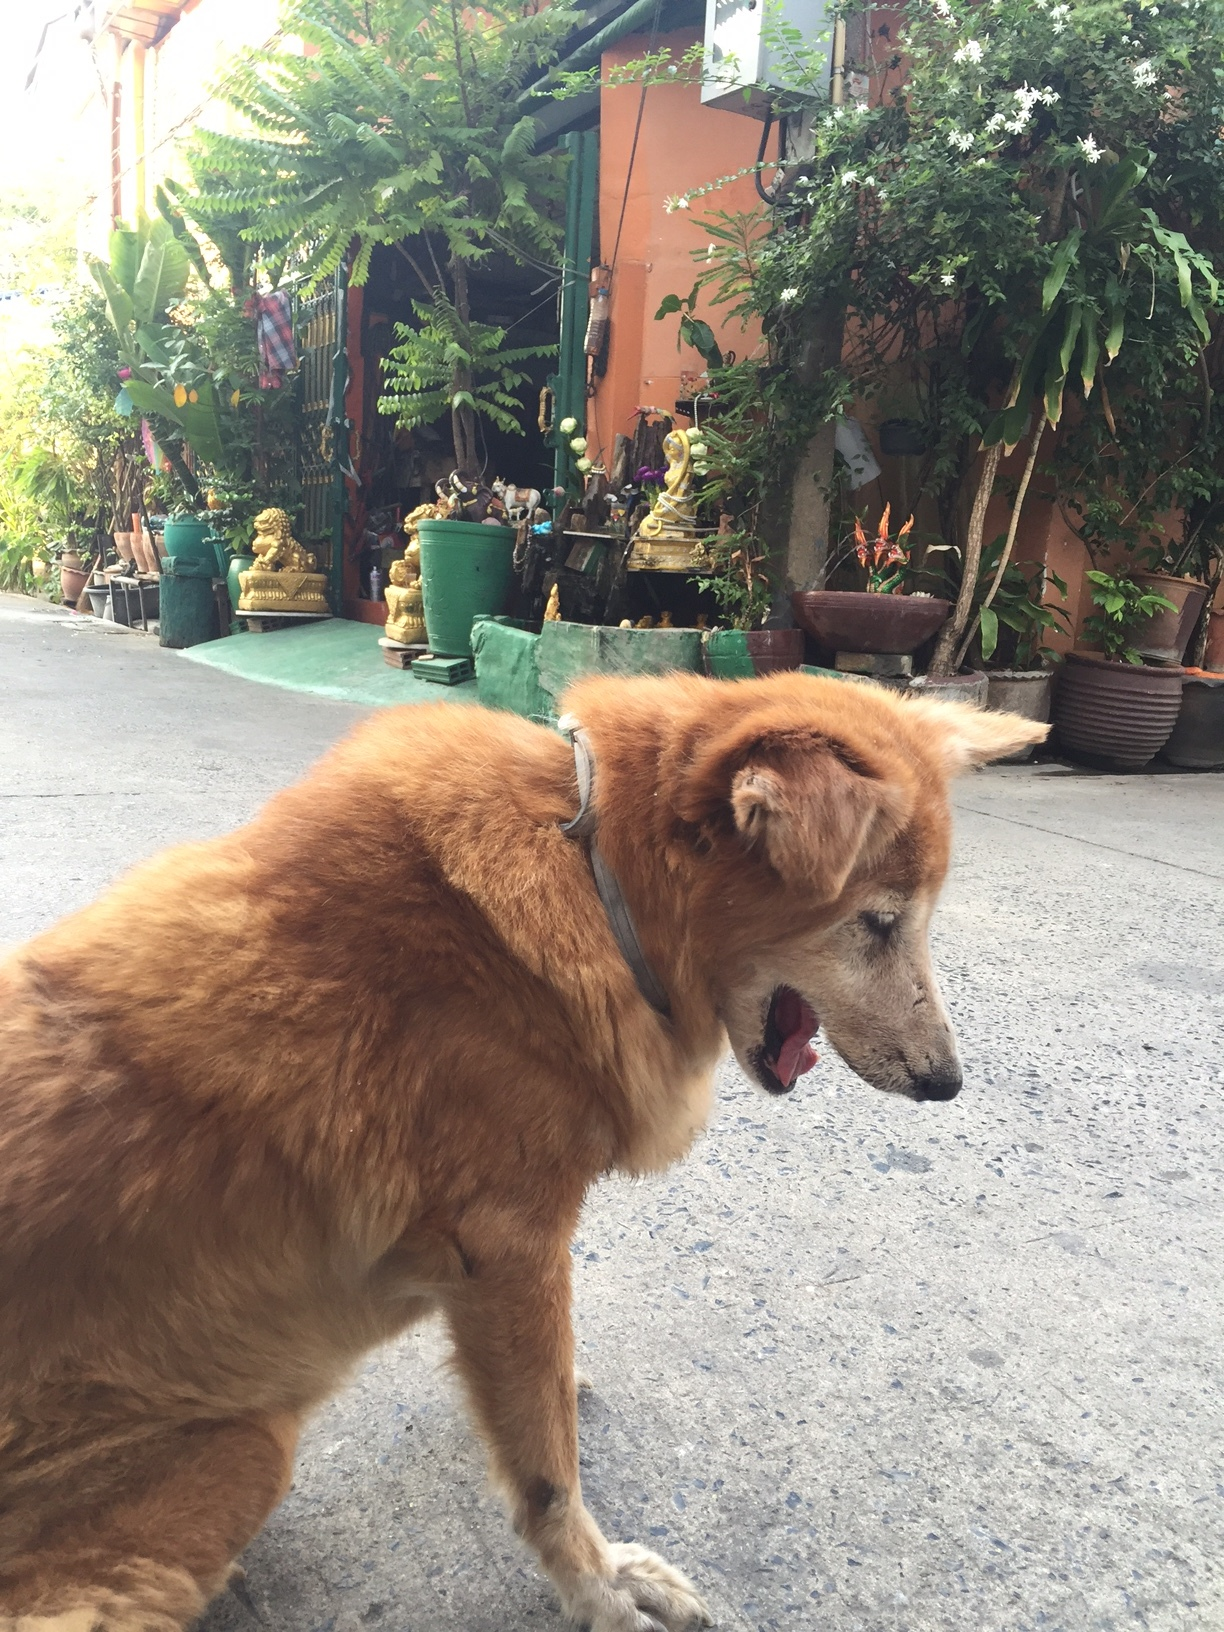 Sway (Beautiful in Thai): Sway was accidentally hit by the owner of the hostel but cared for, loved, and mended back to health. She's now the house dog. Nobody knows how old she is.